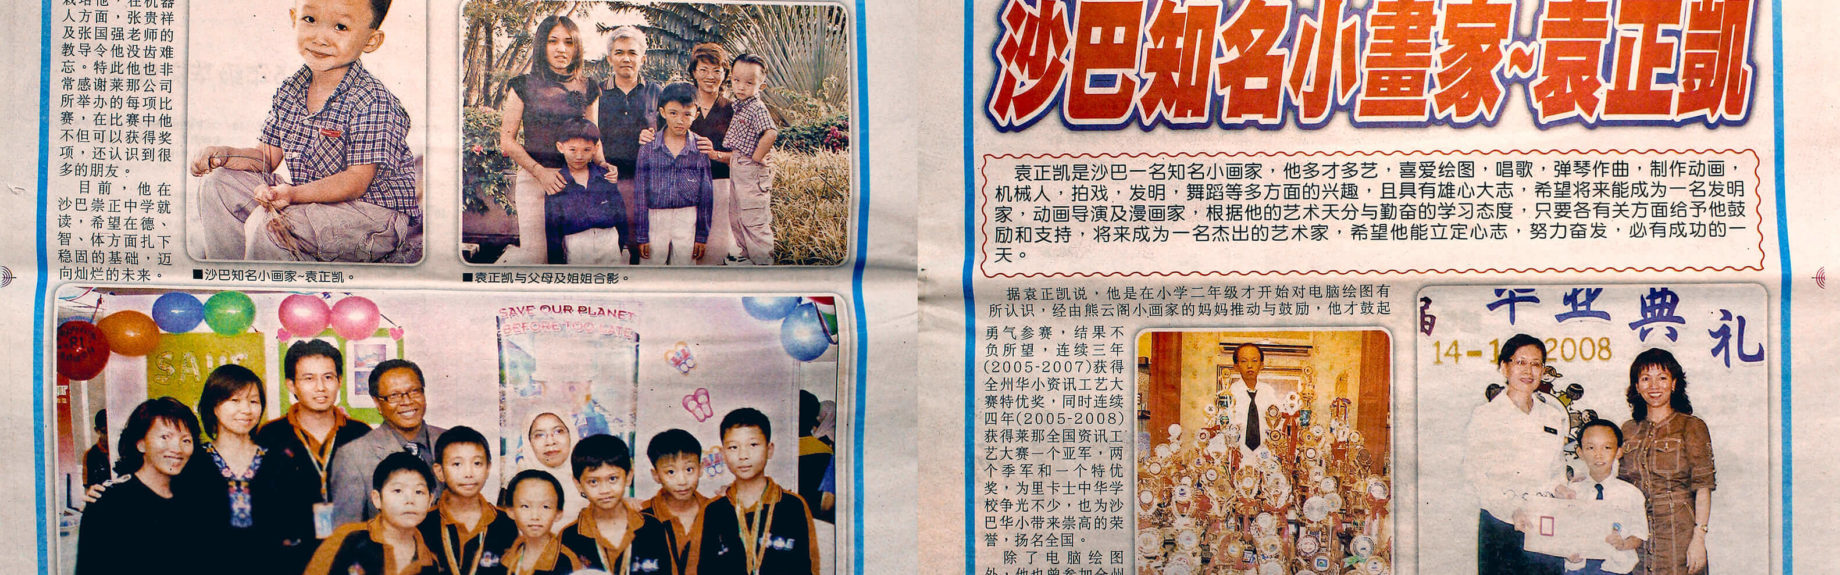 Jayden Yoon ZK Newspaper 2010